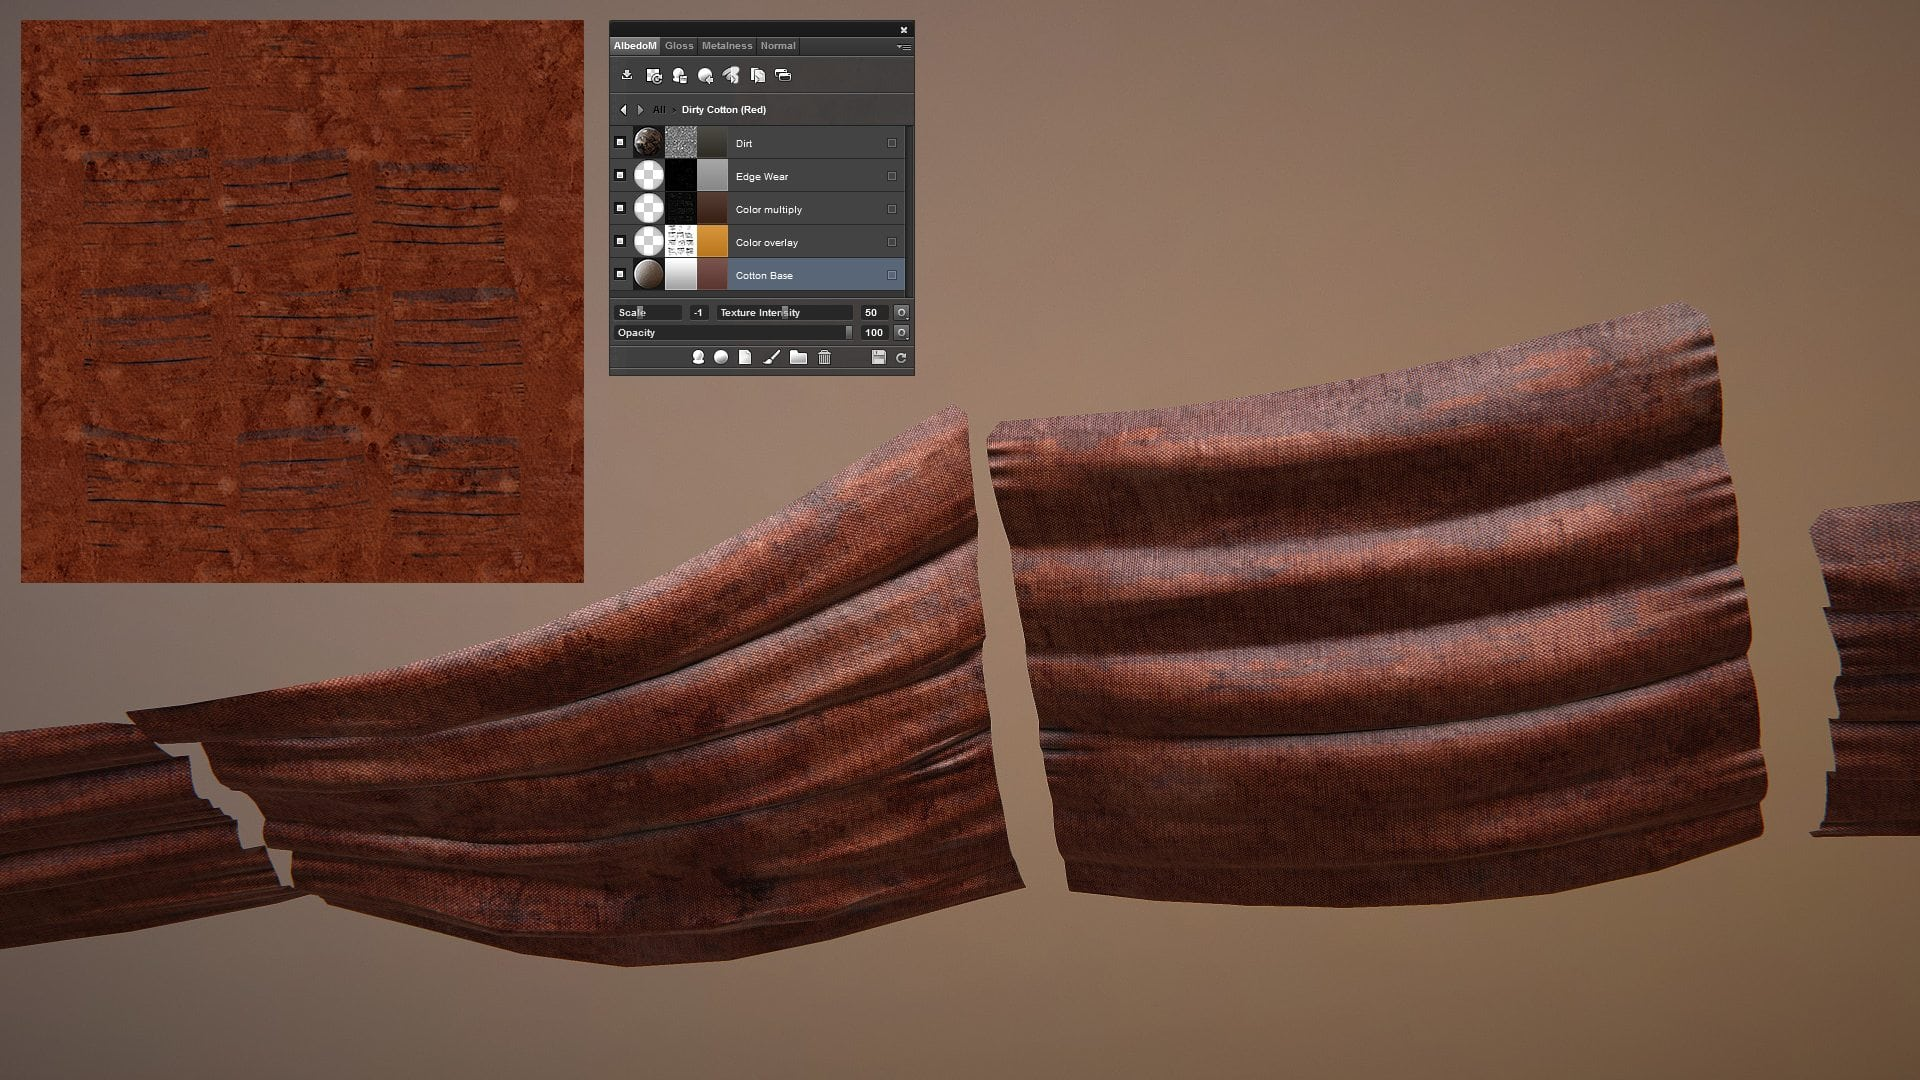 Image 13 - cloth material used on the shades and final diffuse map